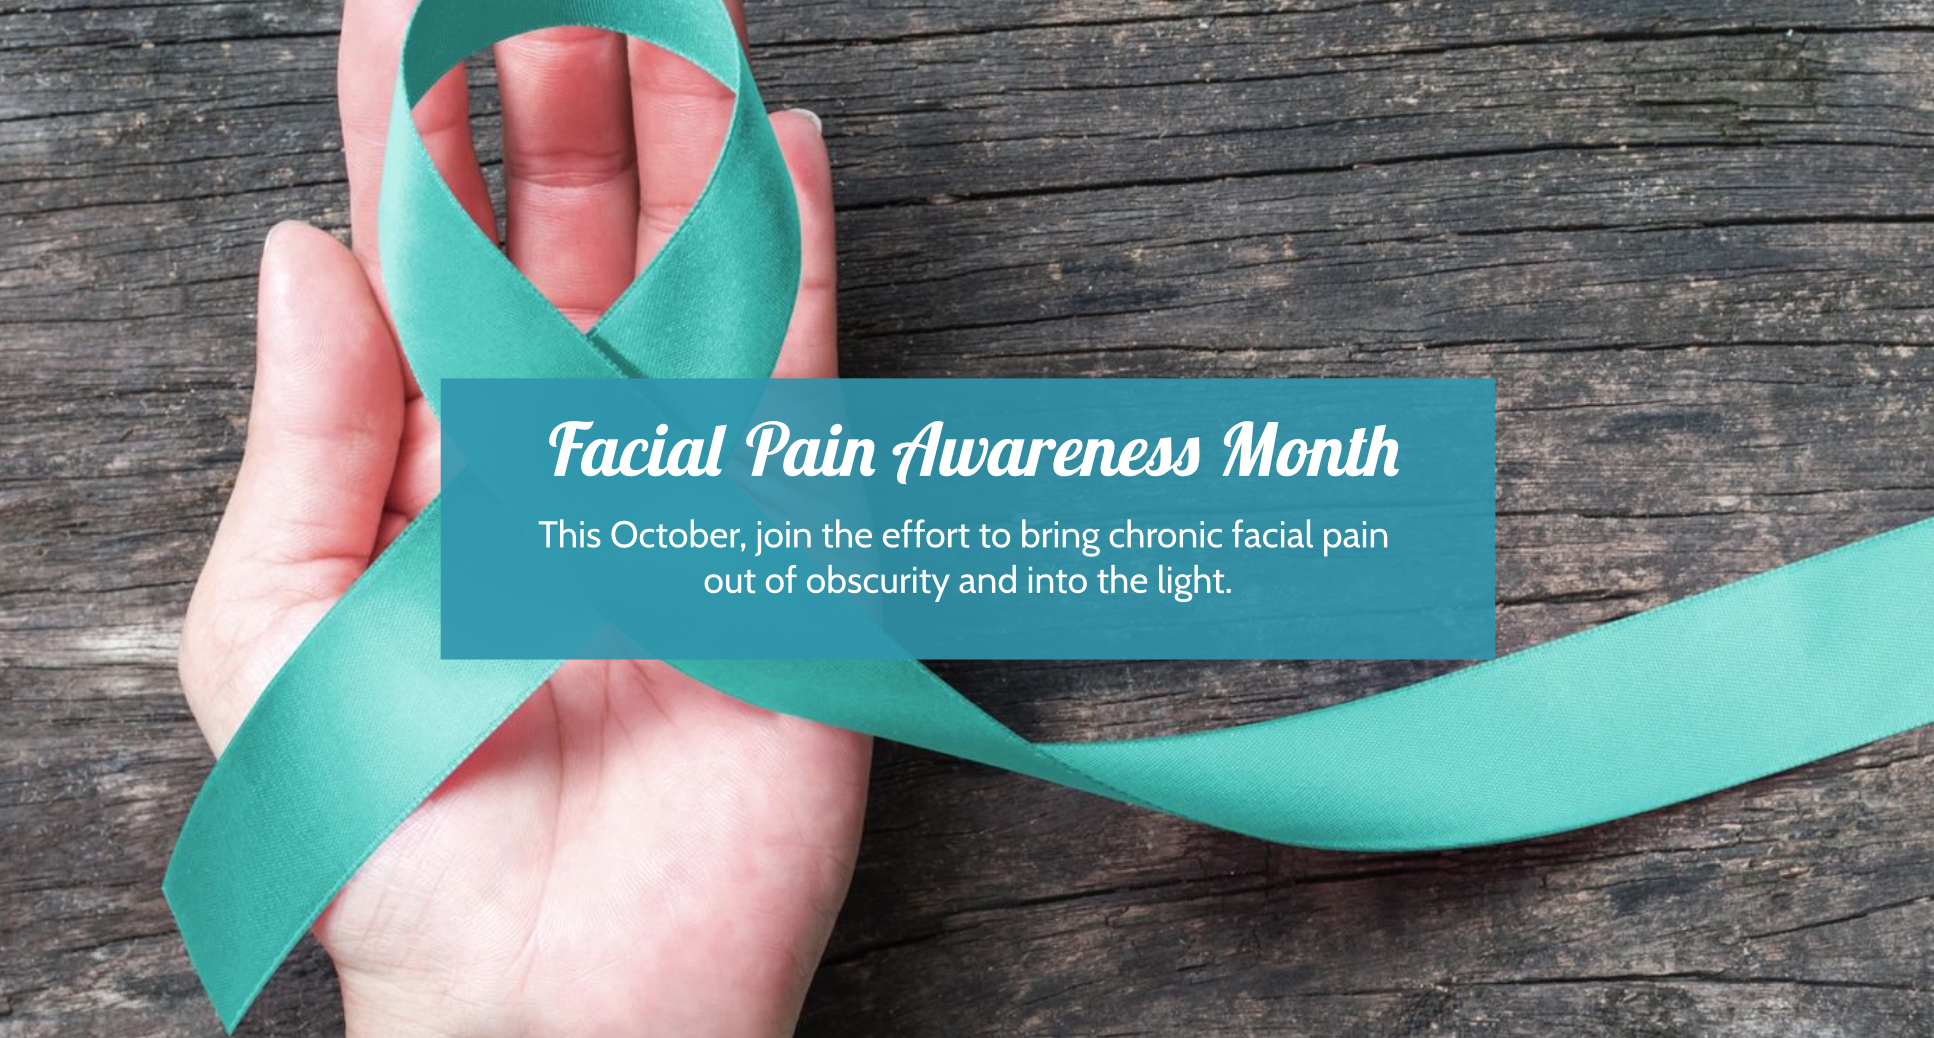 facial pain awareness month